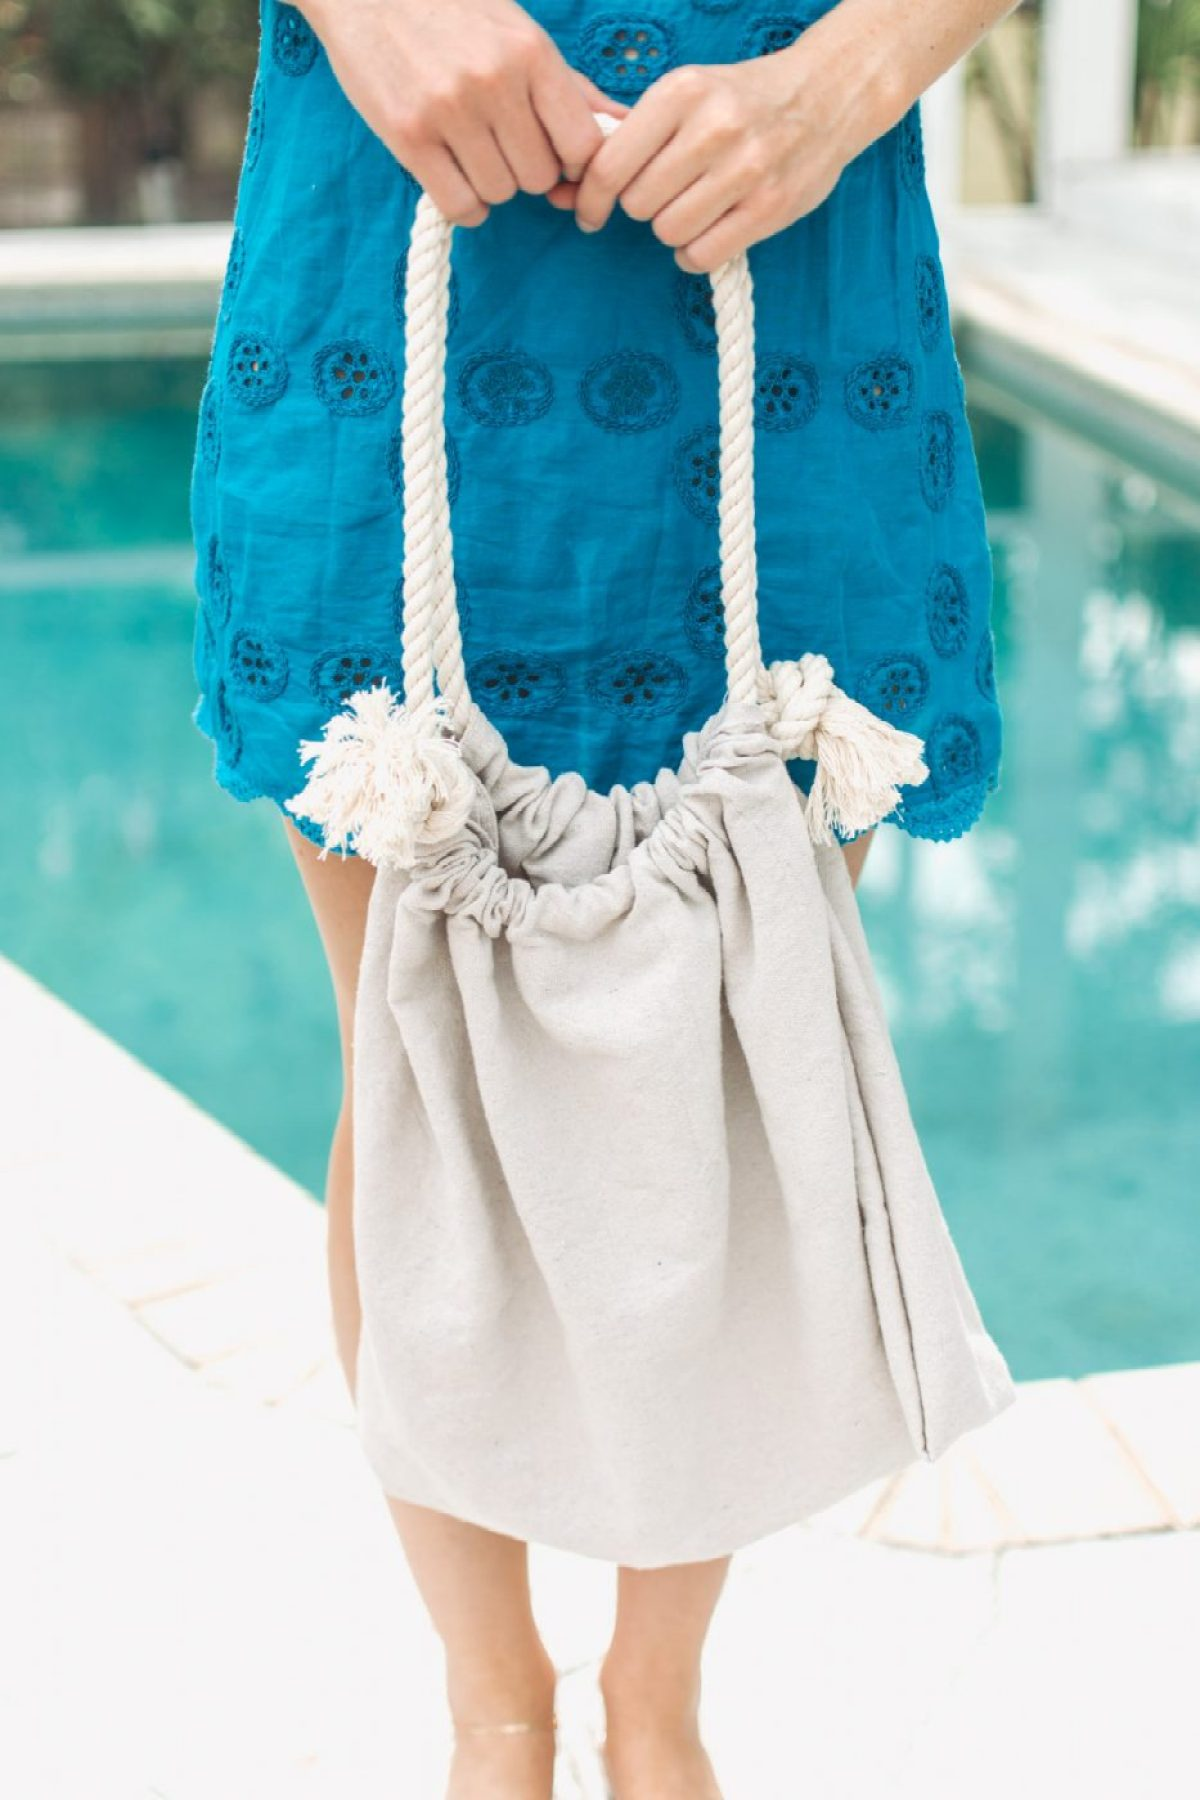 No Sew DIY Canvas Beach Bag by Jenny of Sweet Teal